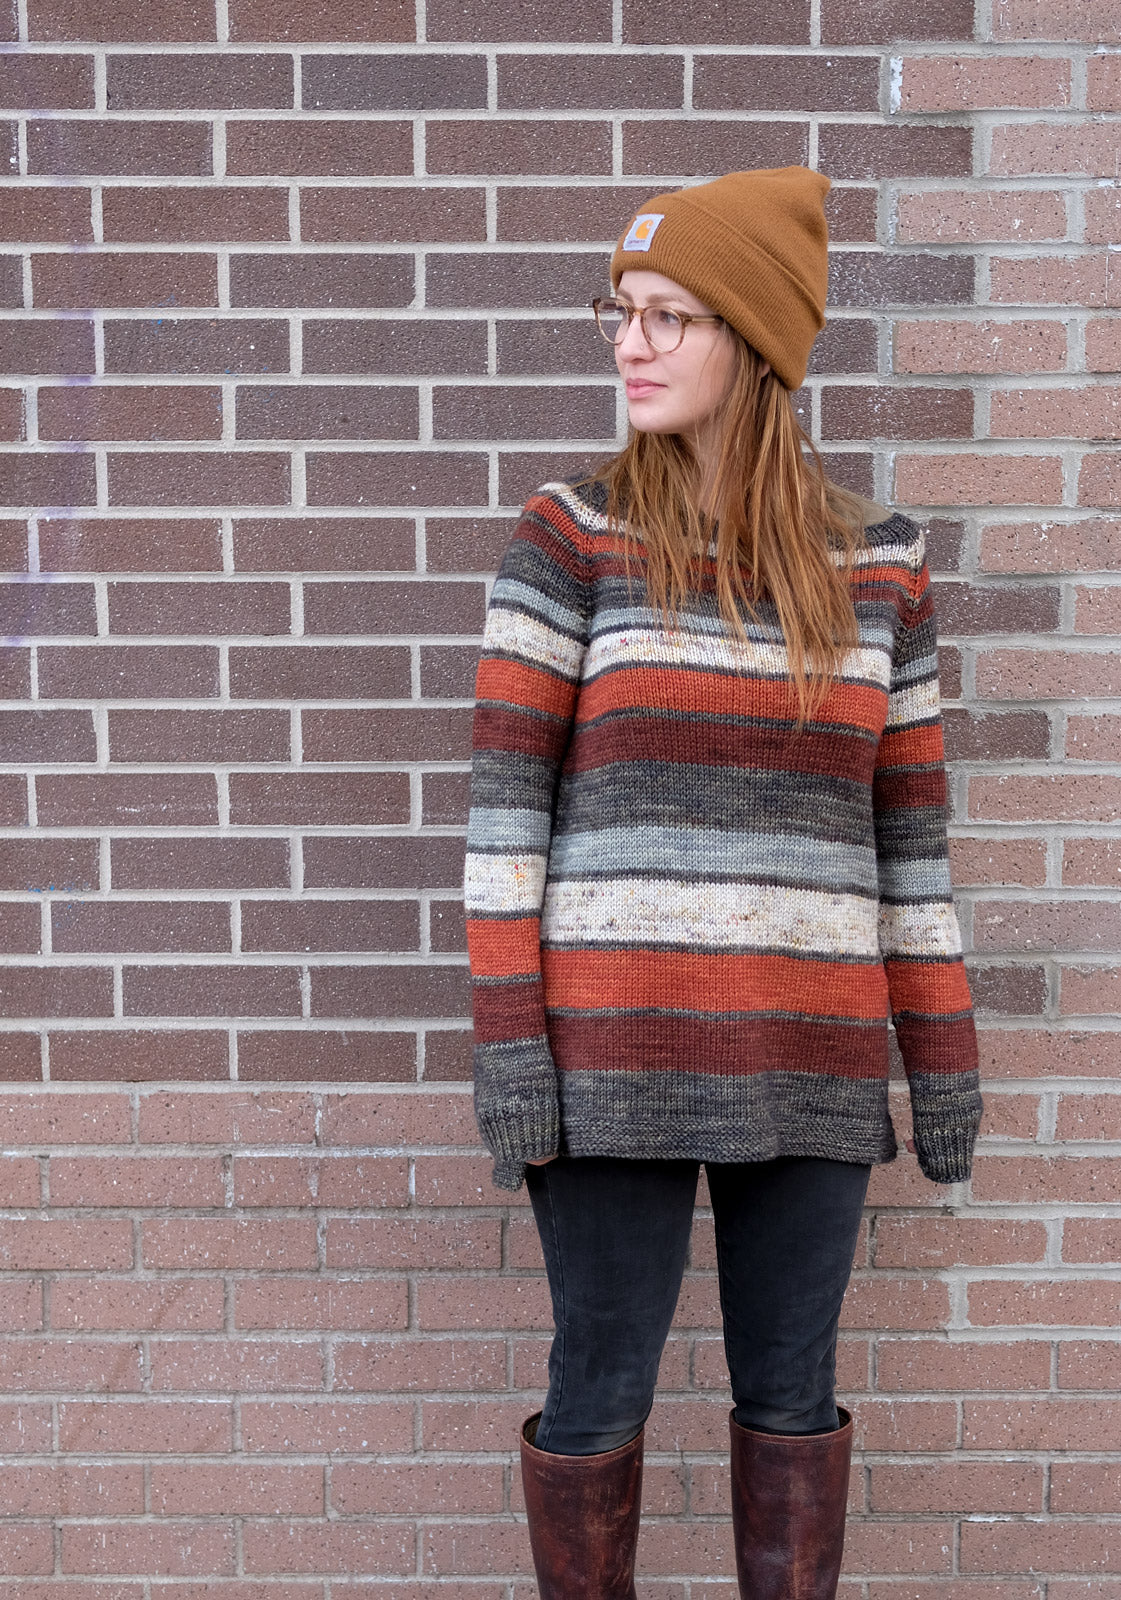 Mary wearing the striped Keystone sweater in front of a brick wall